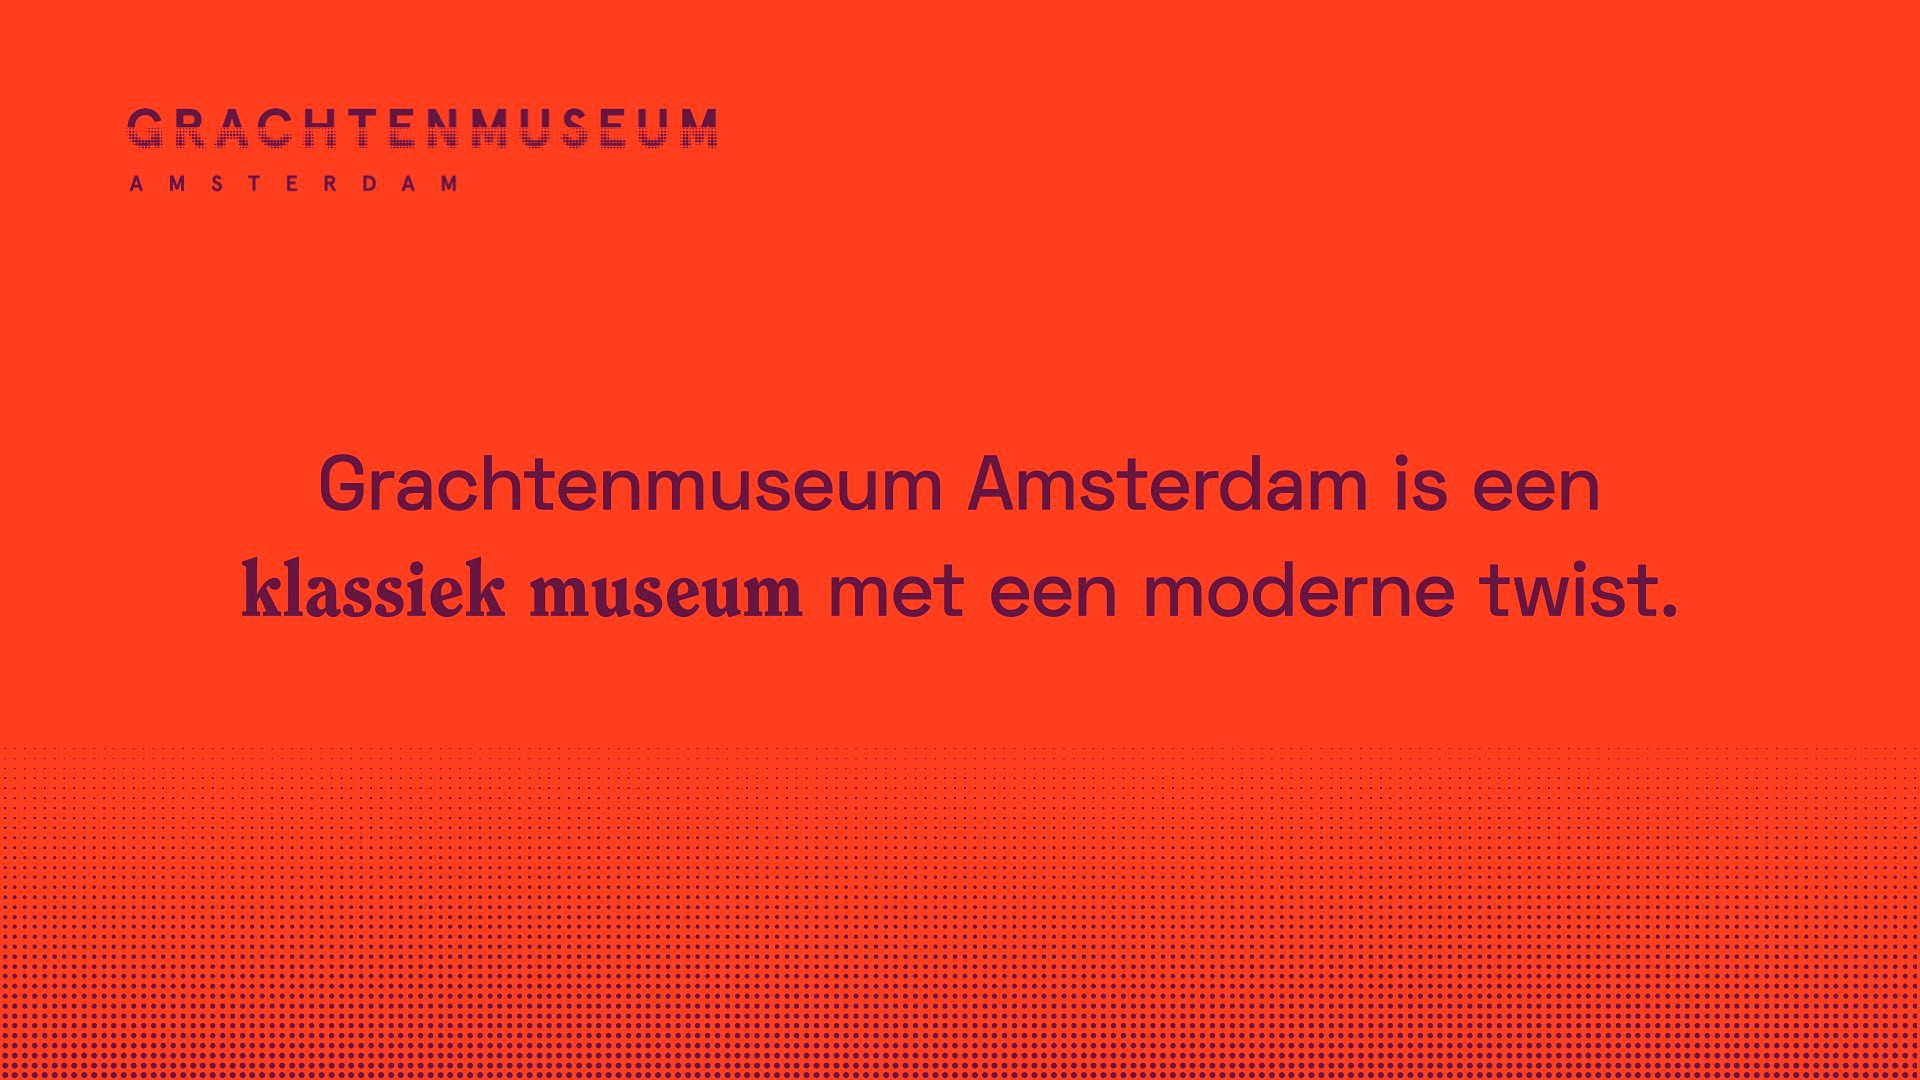 GRACHTENMUSEUM_SLIDES_WIX.010.jpeg